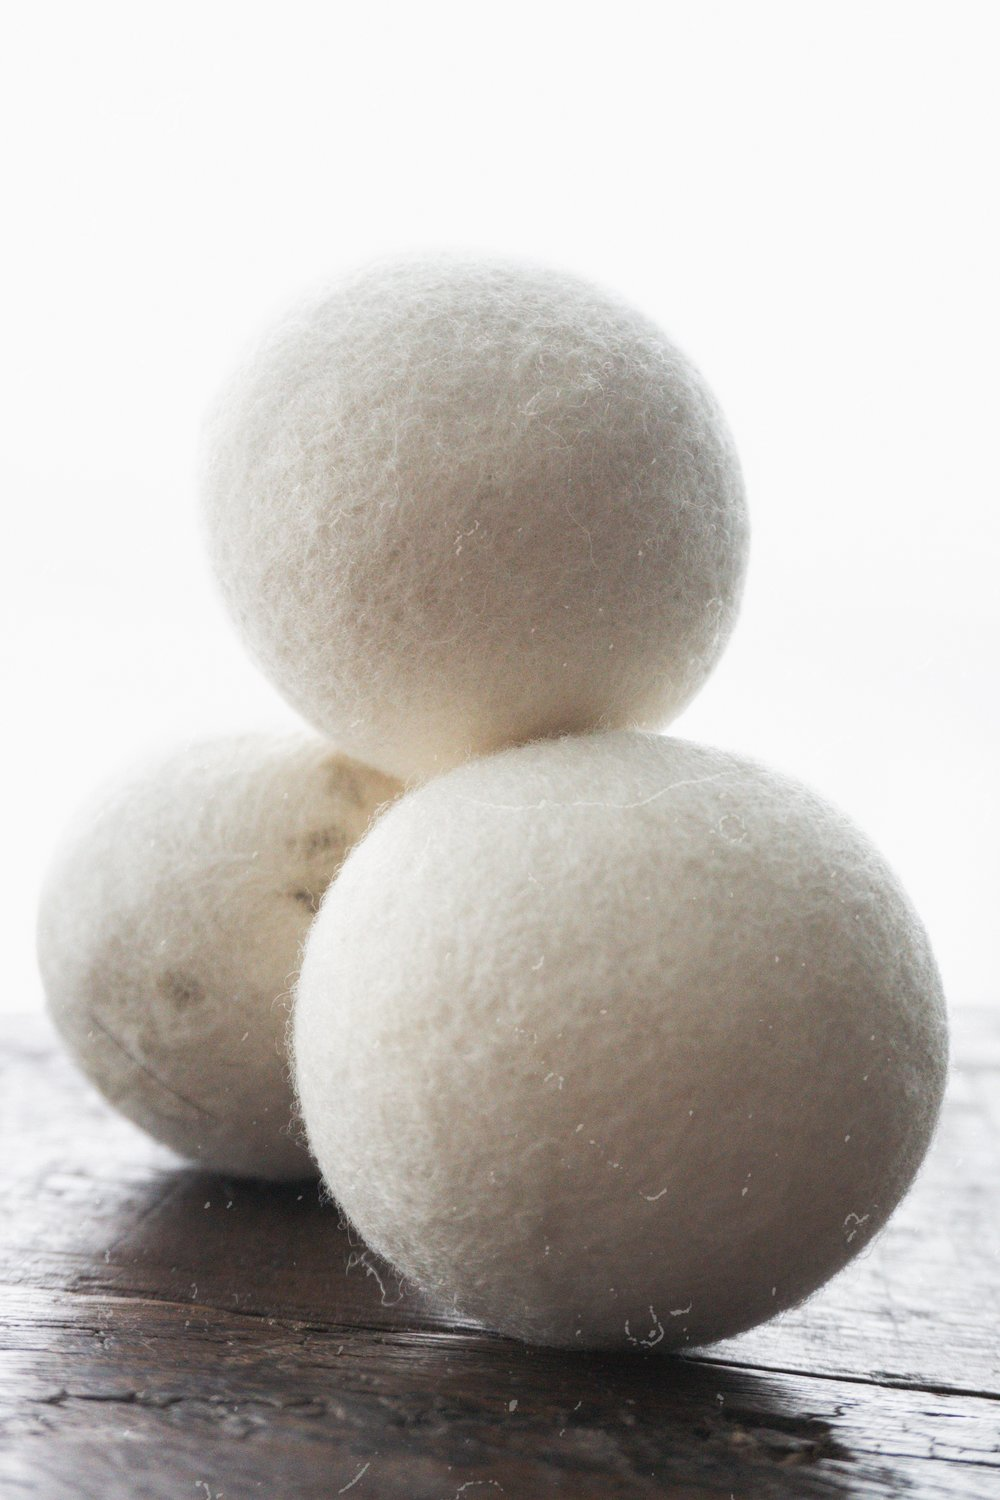 - I also got dryer balls from Amazon, and use them in every dryer load. I sometimes miss the smell of dryer sheets, but I also rarely used a full dryer sheet (I'd cut them in half) because the smell was at times overpowering. The only thing about these is that if you're like us and have a white furry dog and you always wear black, the dryer balls don't remove any fur - like at all. *I don't remember which ones I bought, but I linked a different kind from Amazon